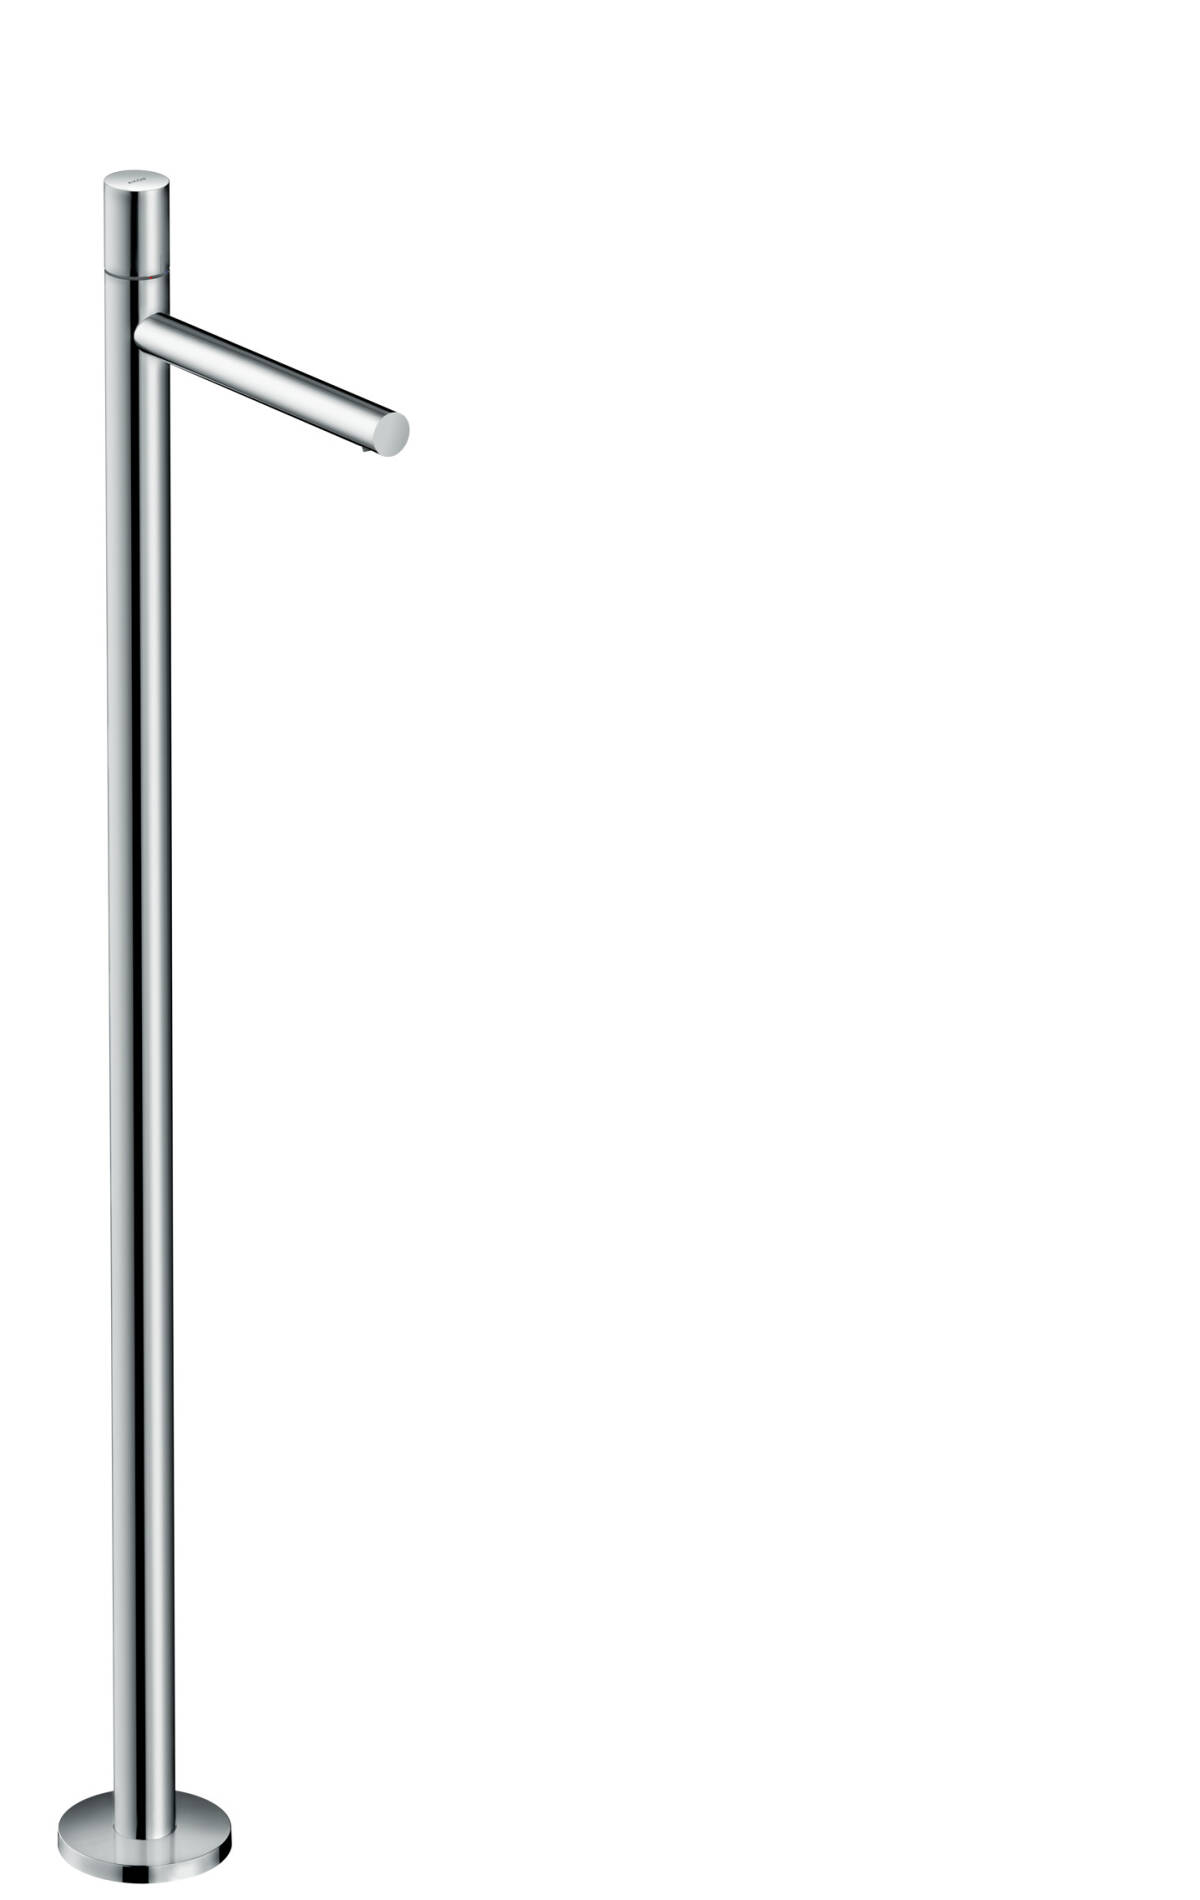 Single lever basin mixer floor-standing with zero handle without waste set, Chrome, 45037000